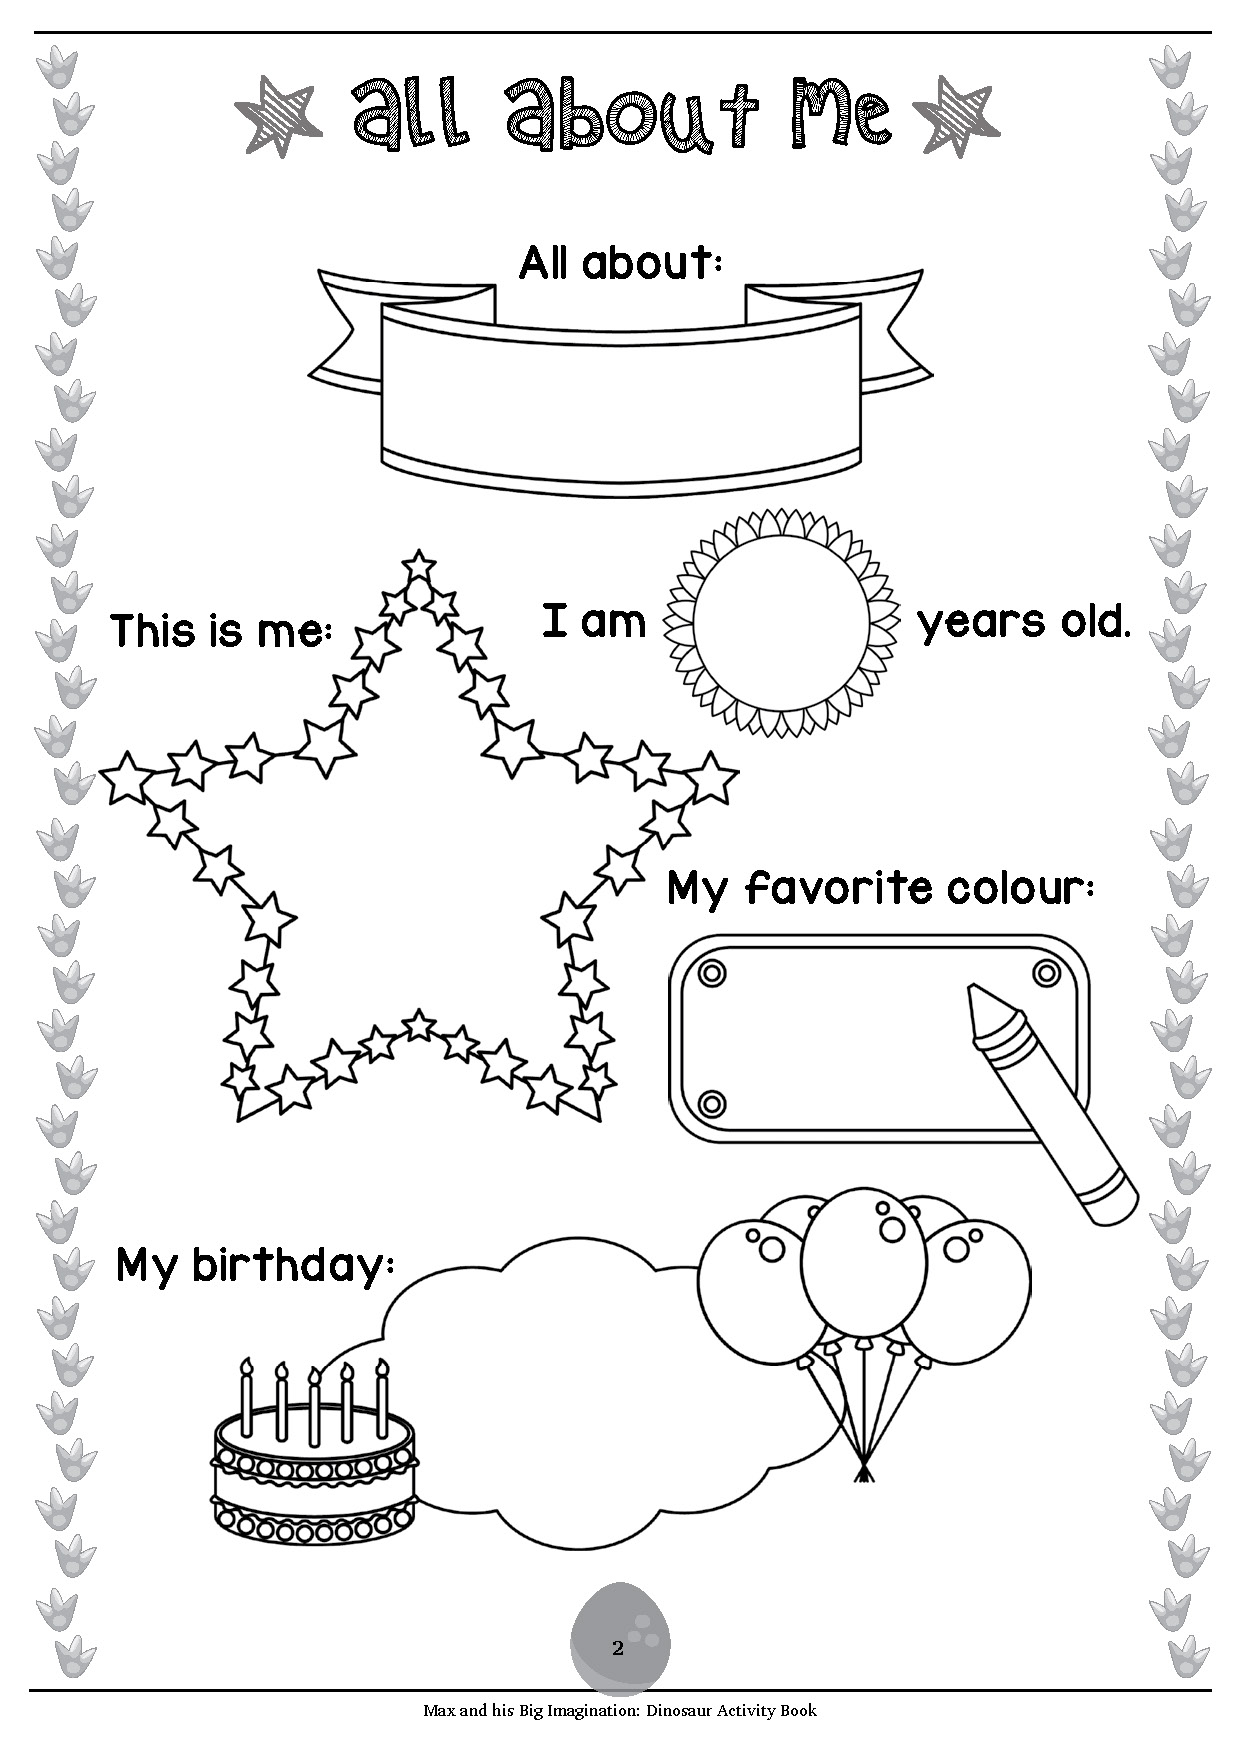 Max Free Activity Worksheet Dinosaur Activity Book Sample